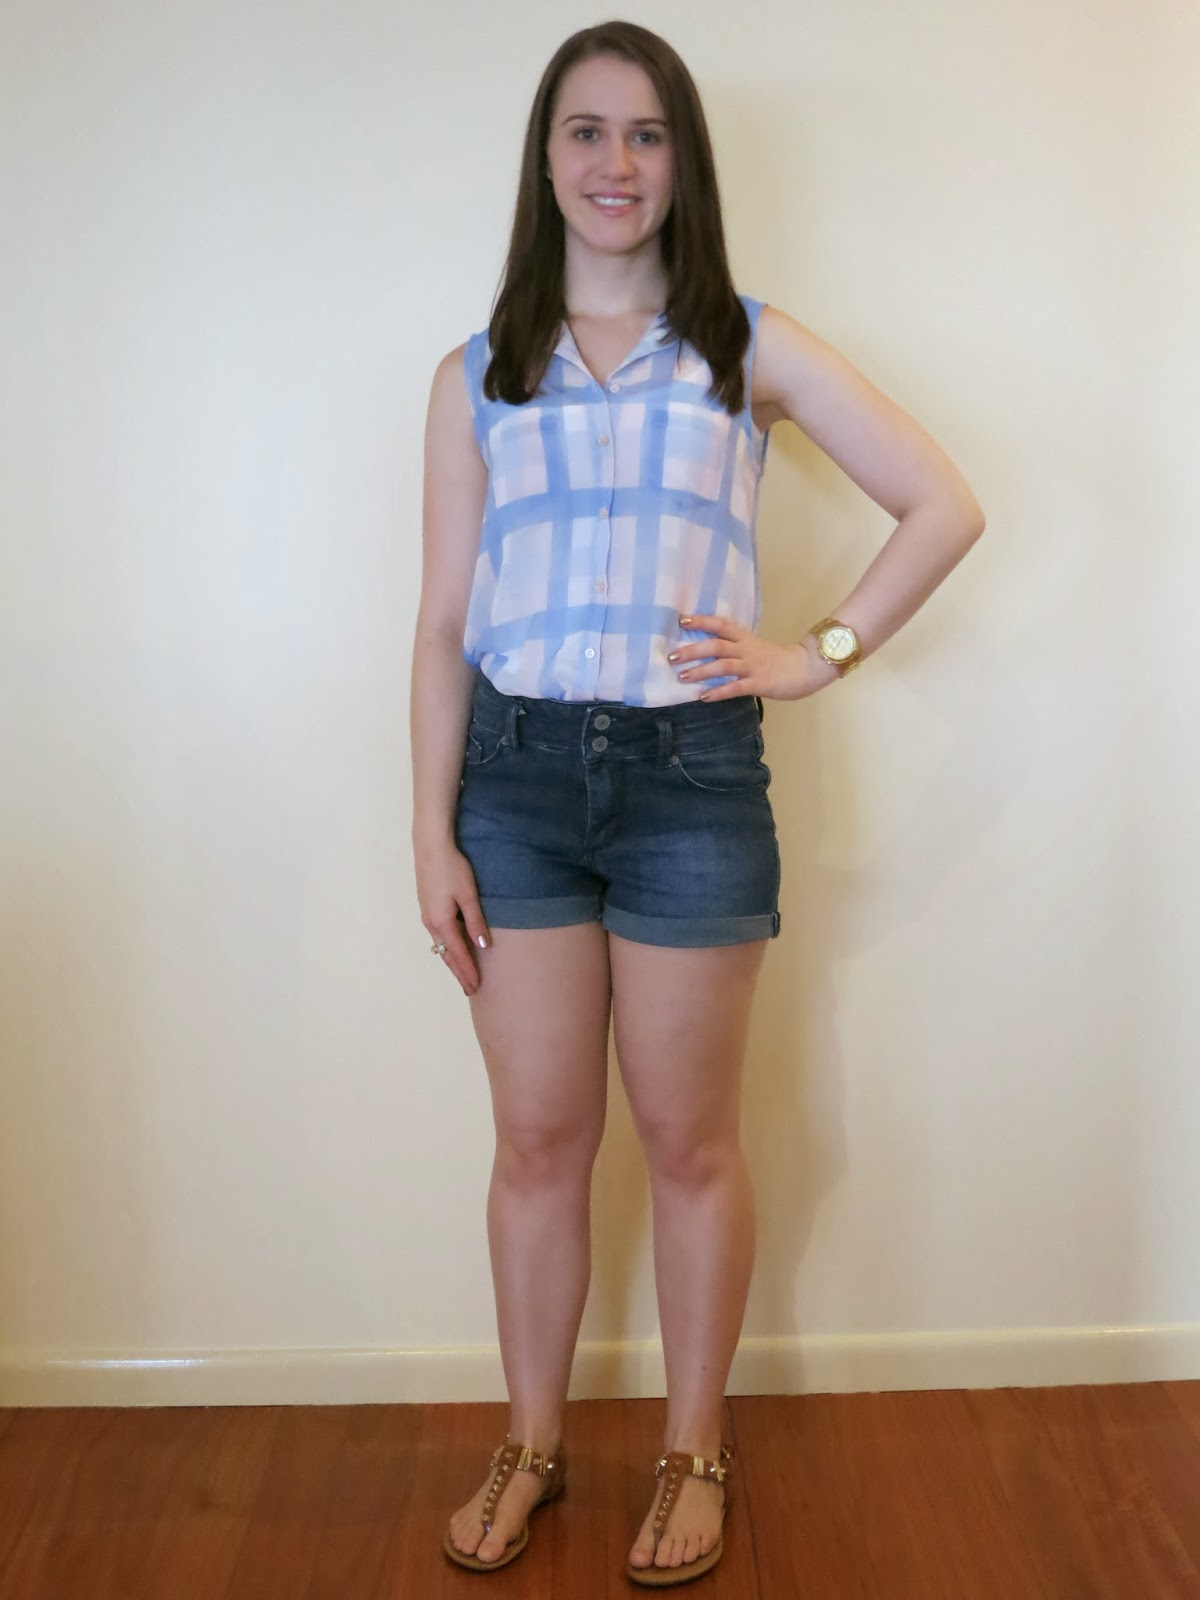 petite outfit, petite girl outfit, short girl outfit, checked sheer shirt, dark wash high waisted shorts, tan accessories, gold jewellery, summer outfit